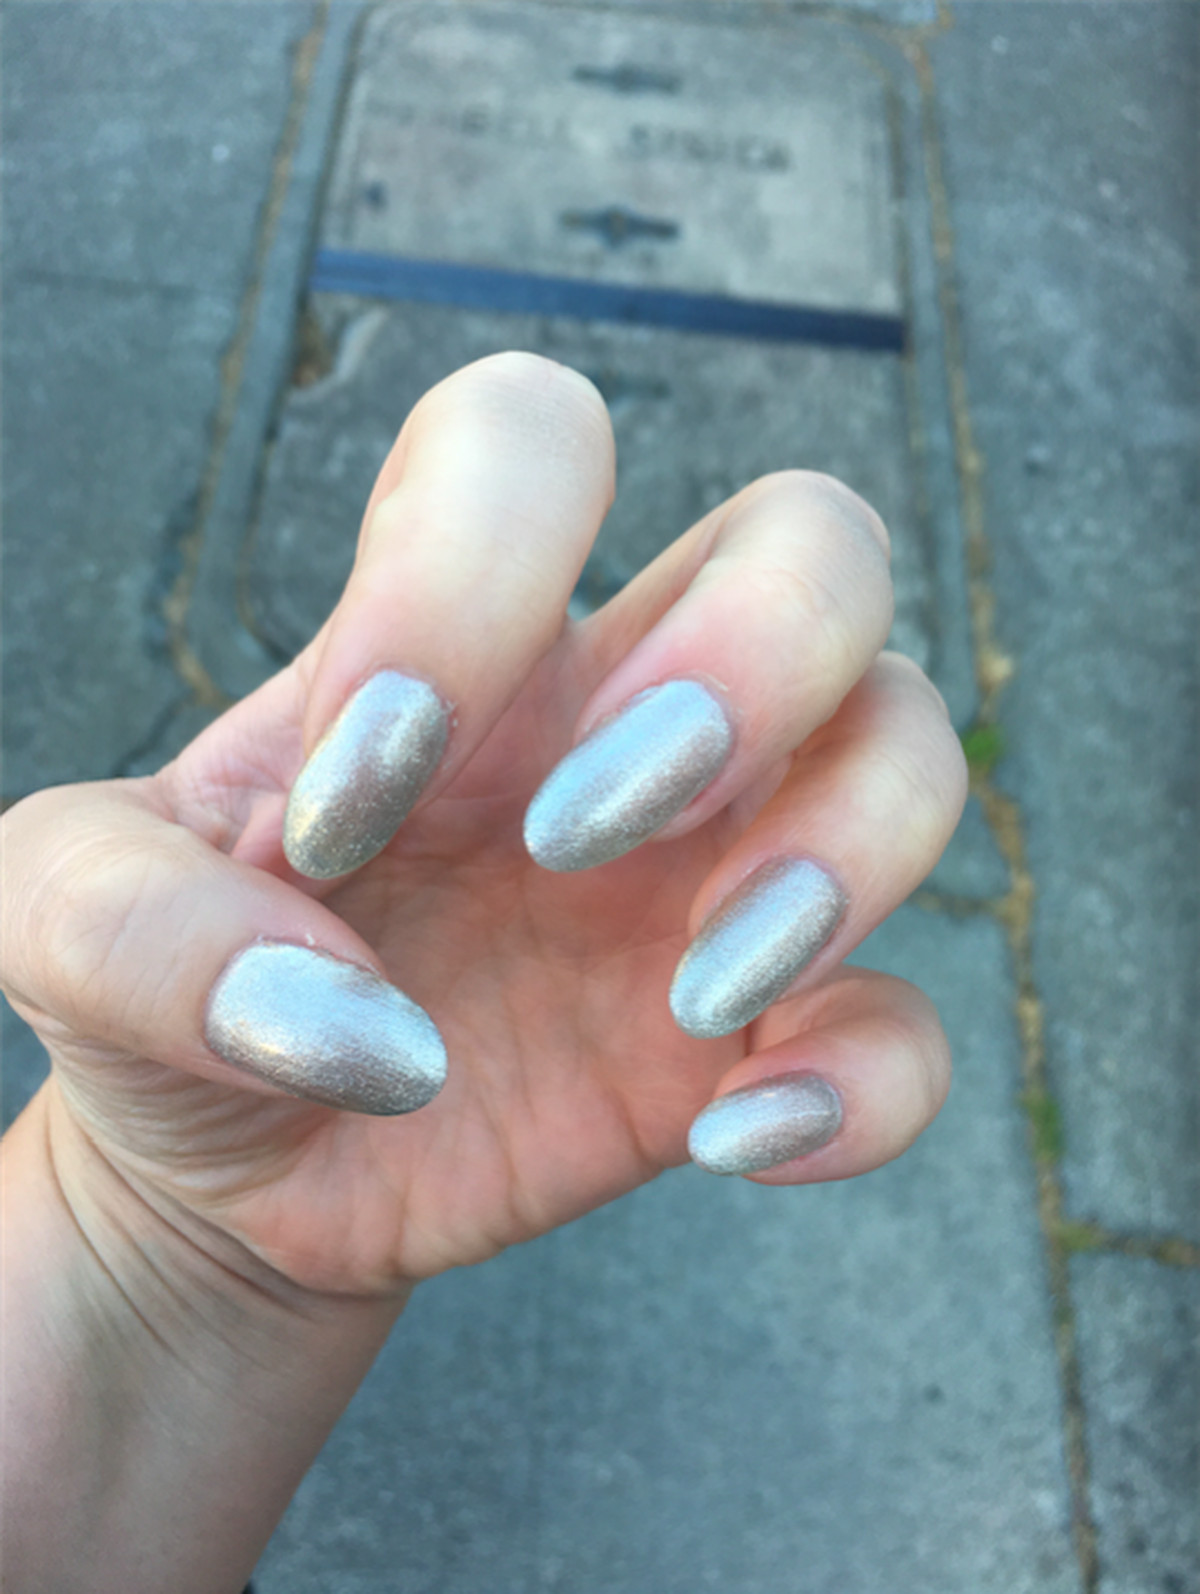 Gels vs. Acrylics: What\'s the Difference Between Fake Nails? - Racked